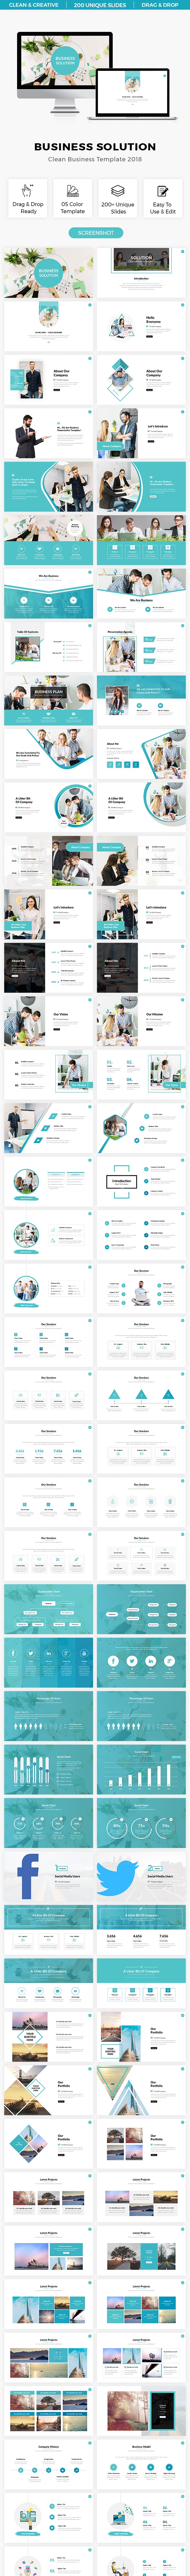 Business Solution Clean Presentation Template 2018 - Business PowerPoint Templates